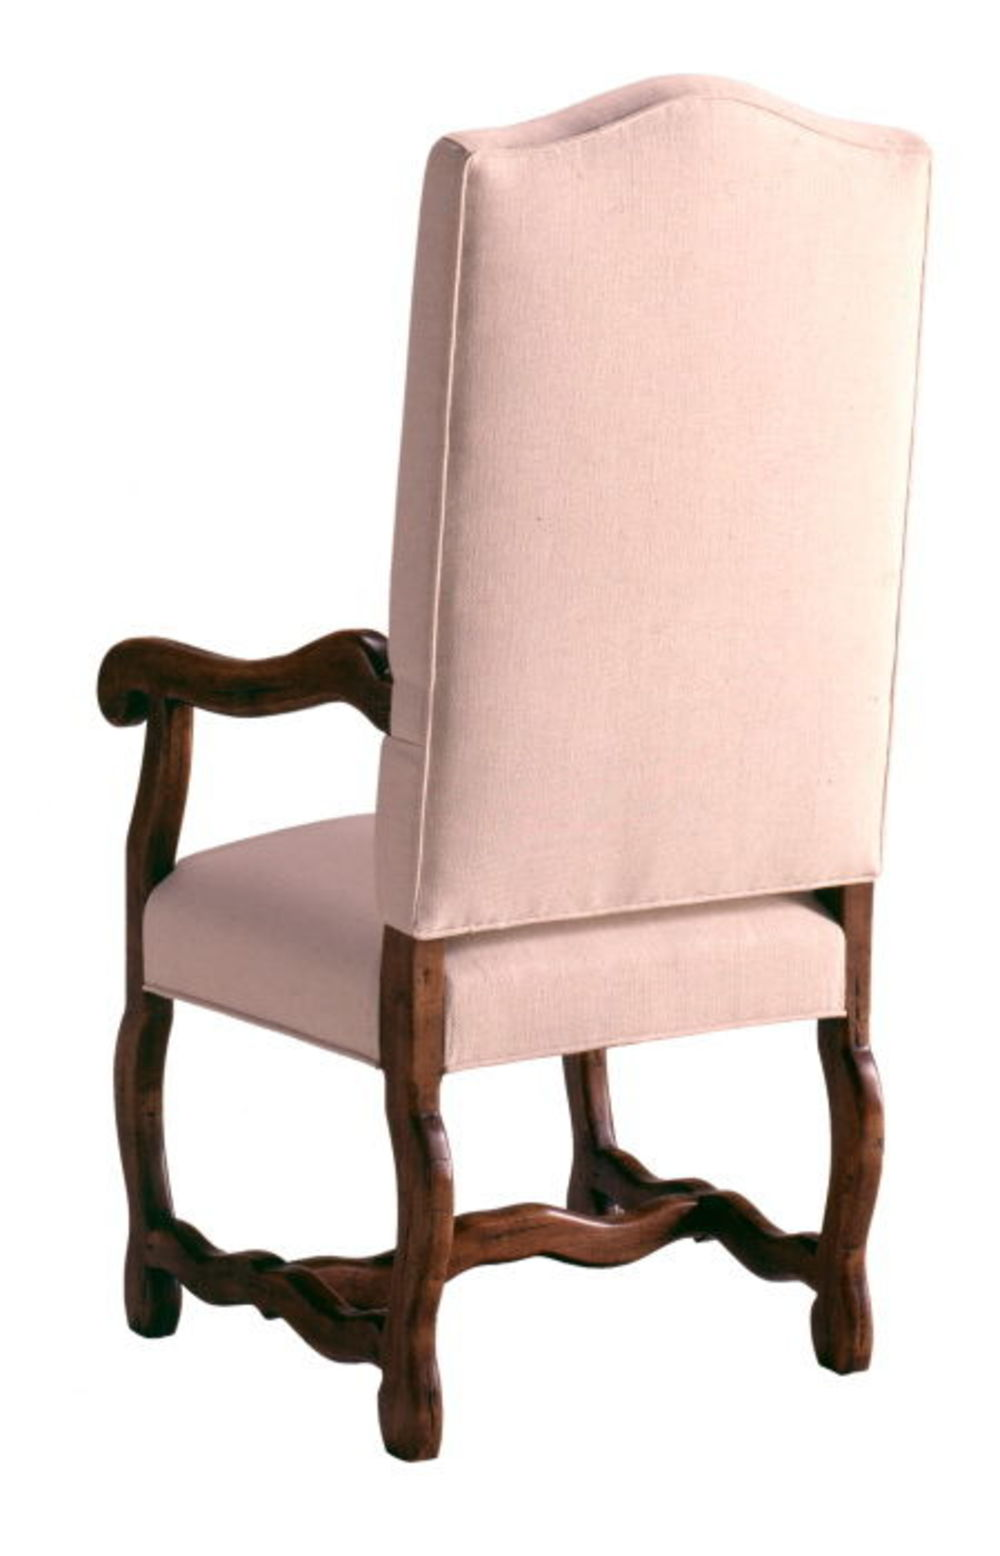 Chaddock - Fleetwood Camelback Arm Chair